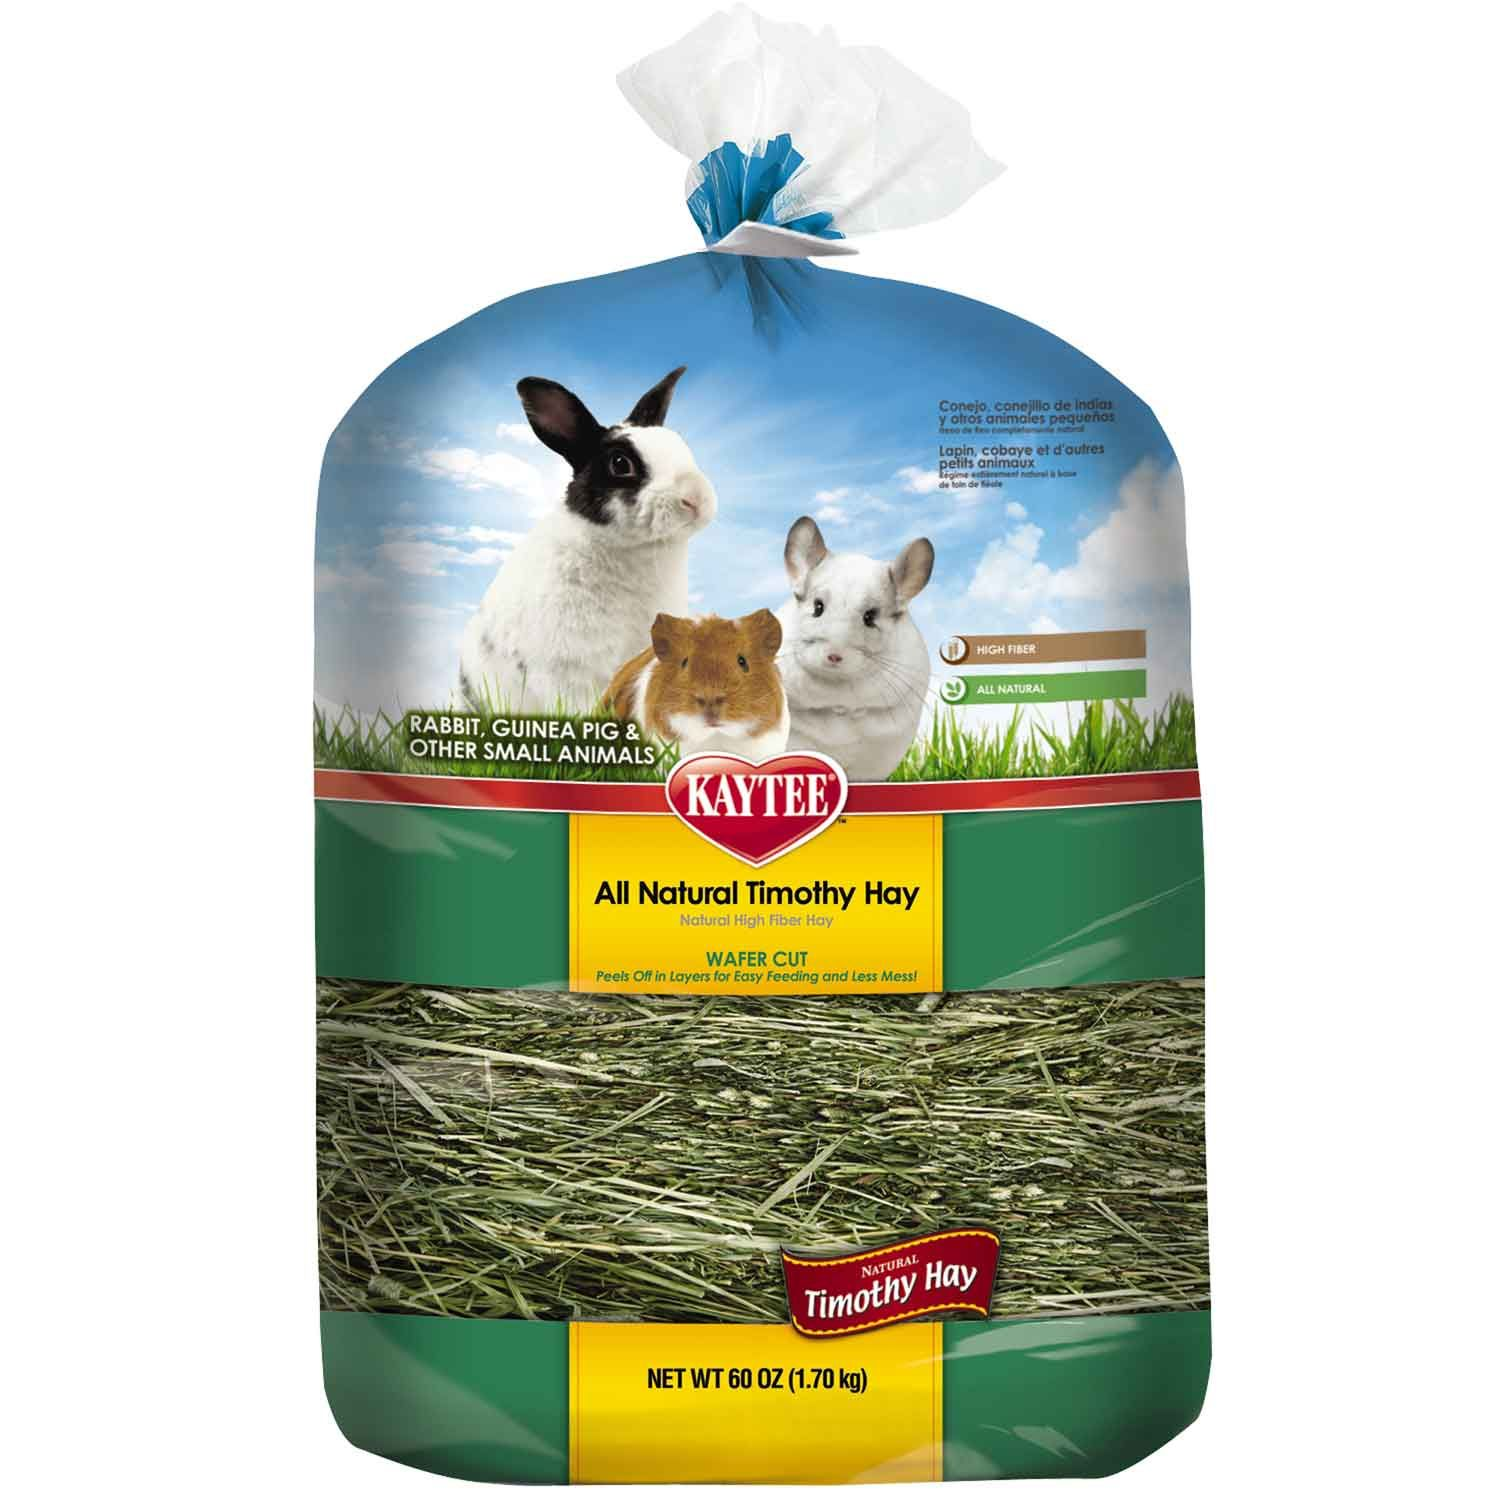 Nutritious sun-cured timothy hay cut straight from the bale and peels off in layers which makes it easy to feed to your small animal. Delicious fiber treat that is lower in calcium.